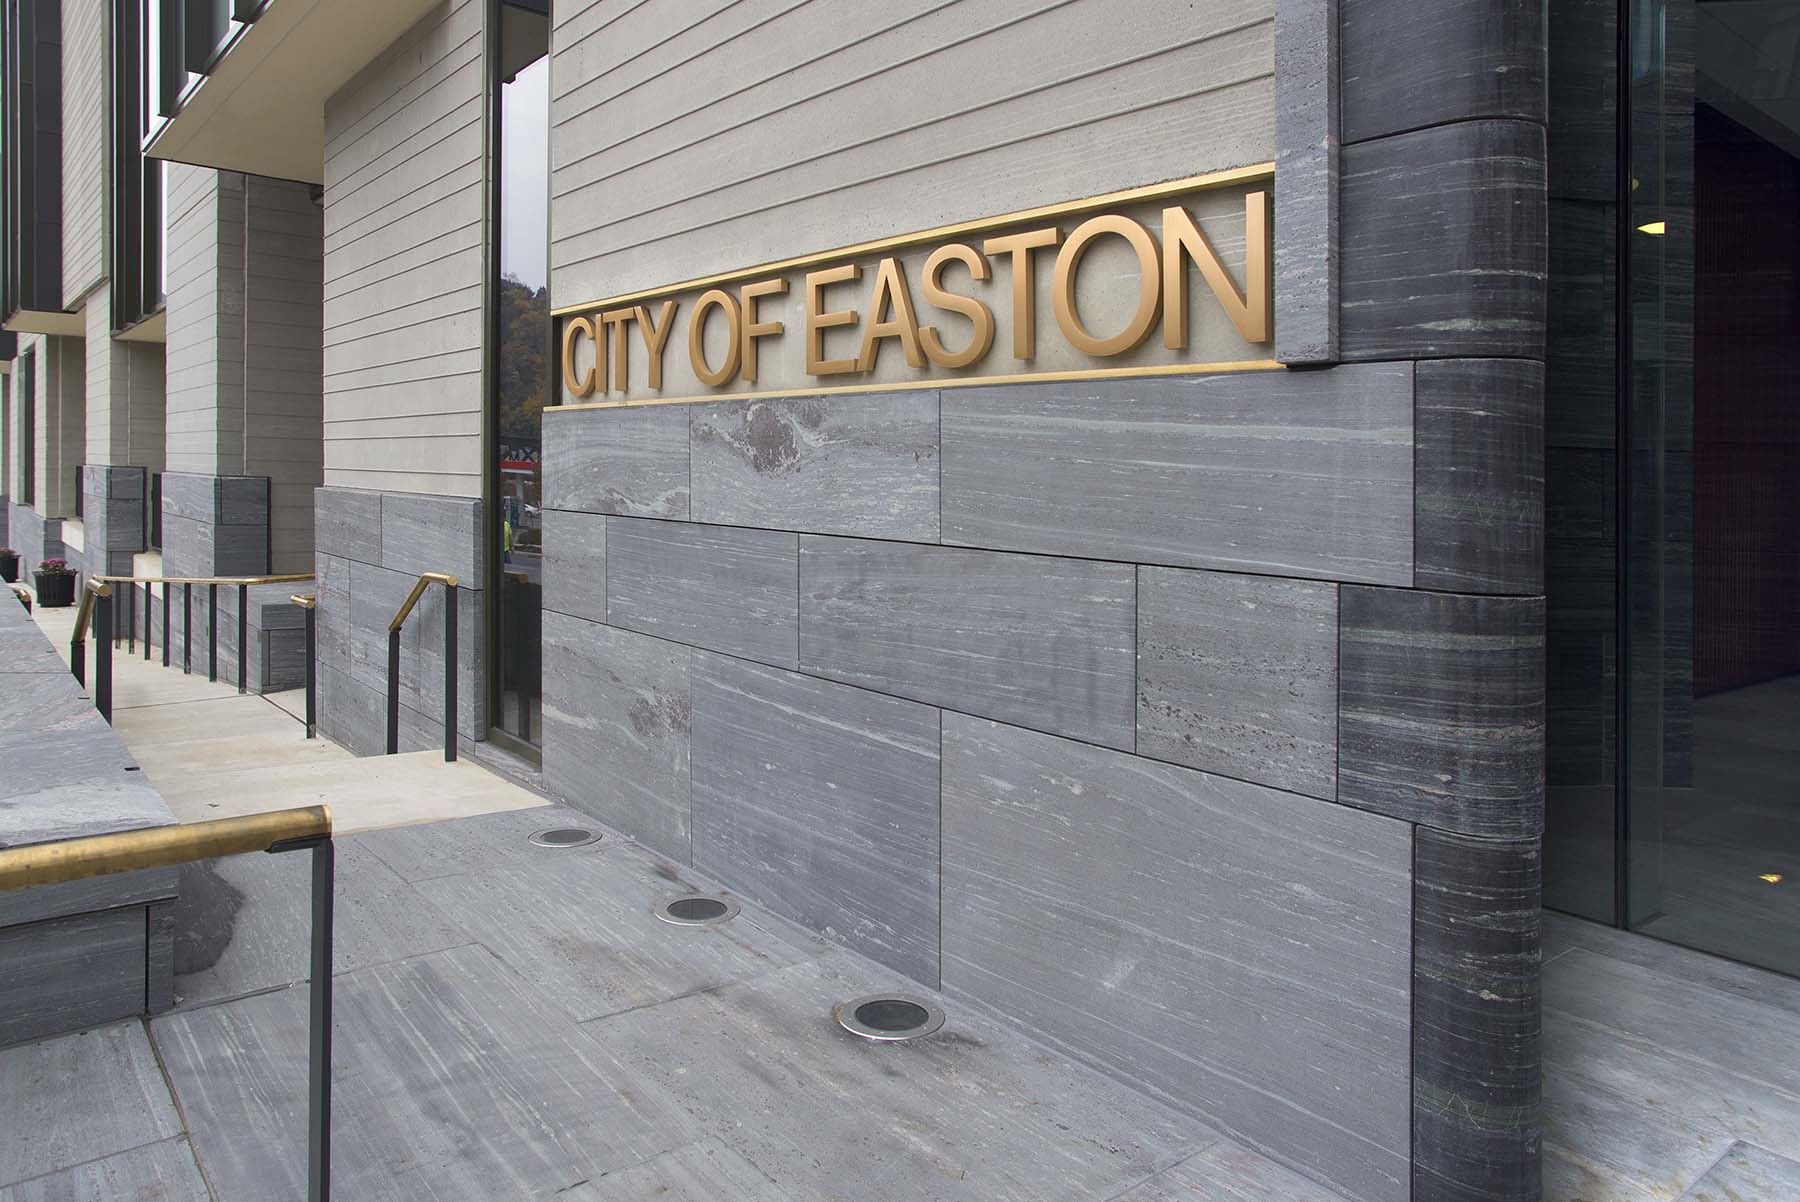 natural stone exterior thin veneer wall at Easton City Hall